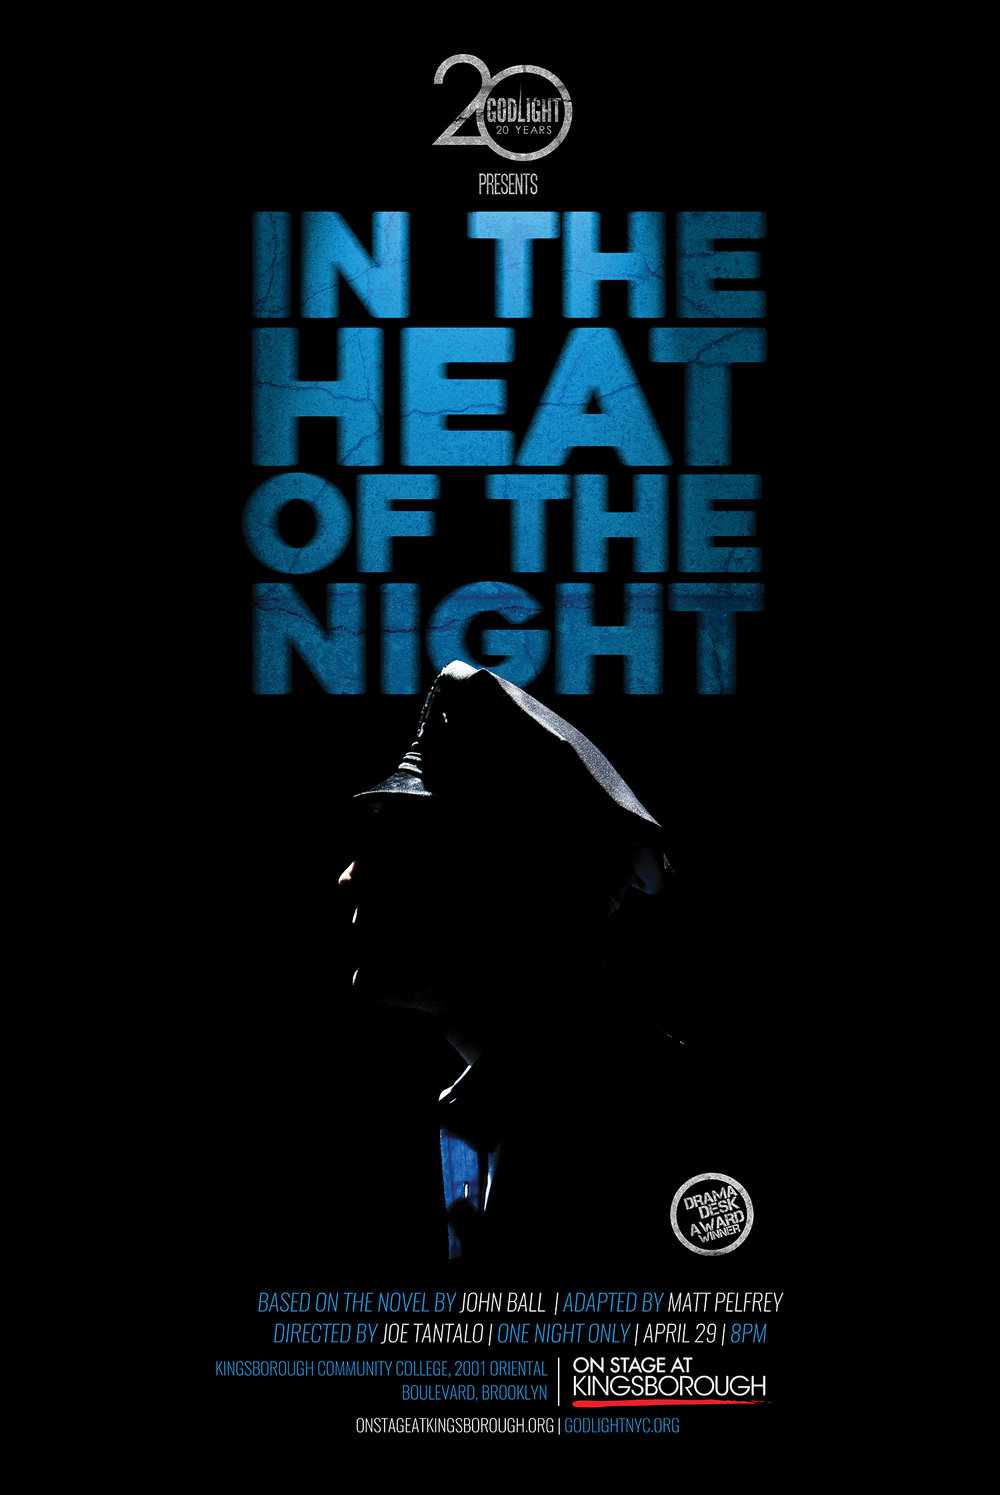 intheheatofthenight_poster24x36_FINAL_web.jpg